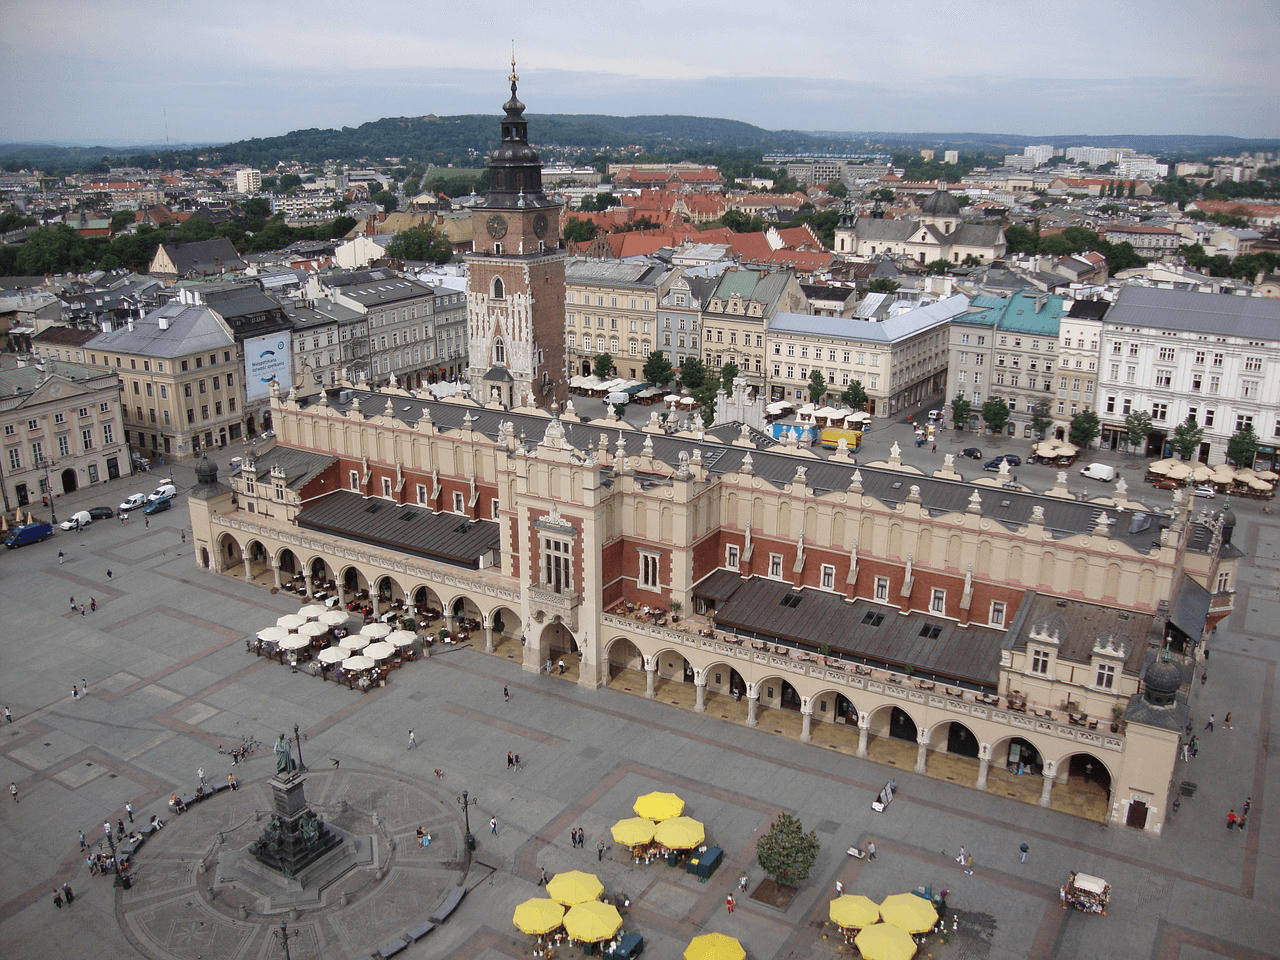 Cheap flights to Krakow from Oslo starting from 31 Eur for return trip